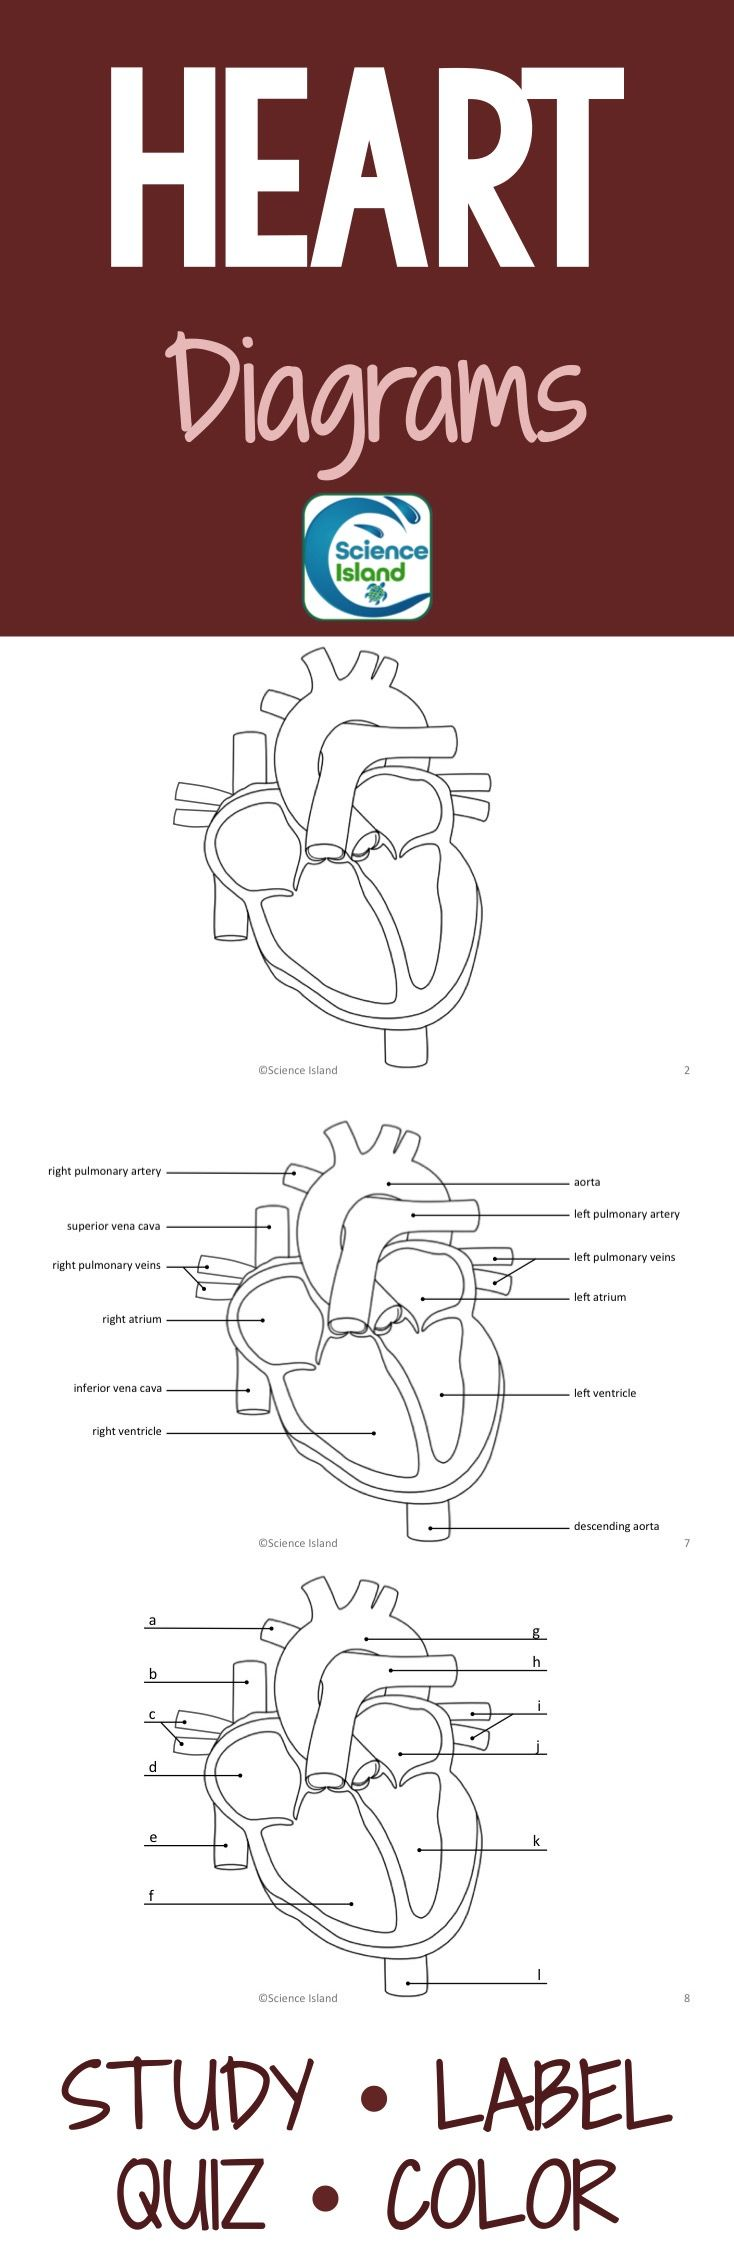 heart diagrams: anterior and frontal section with quizzes | anatomy